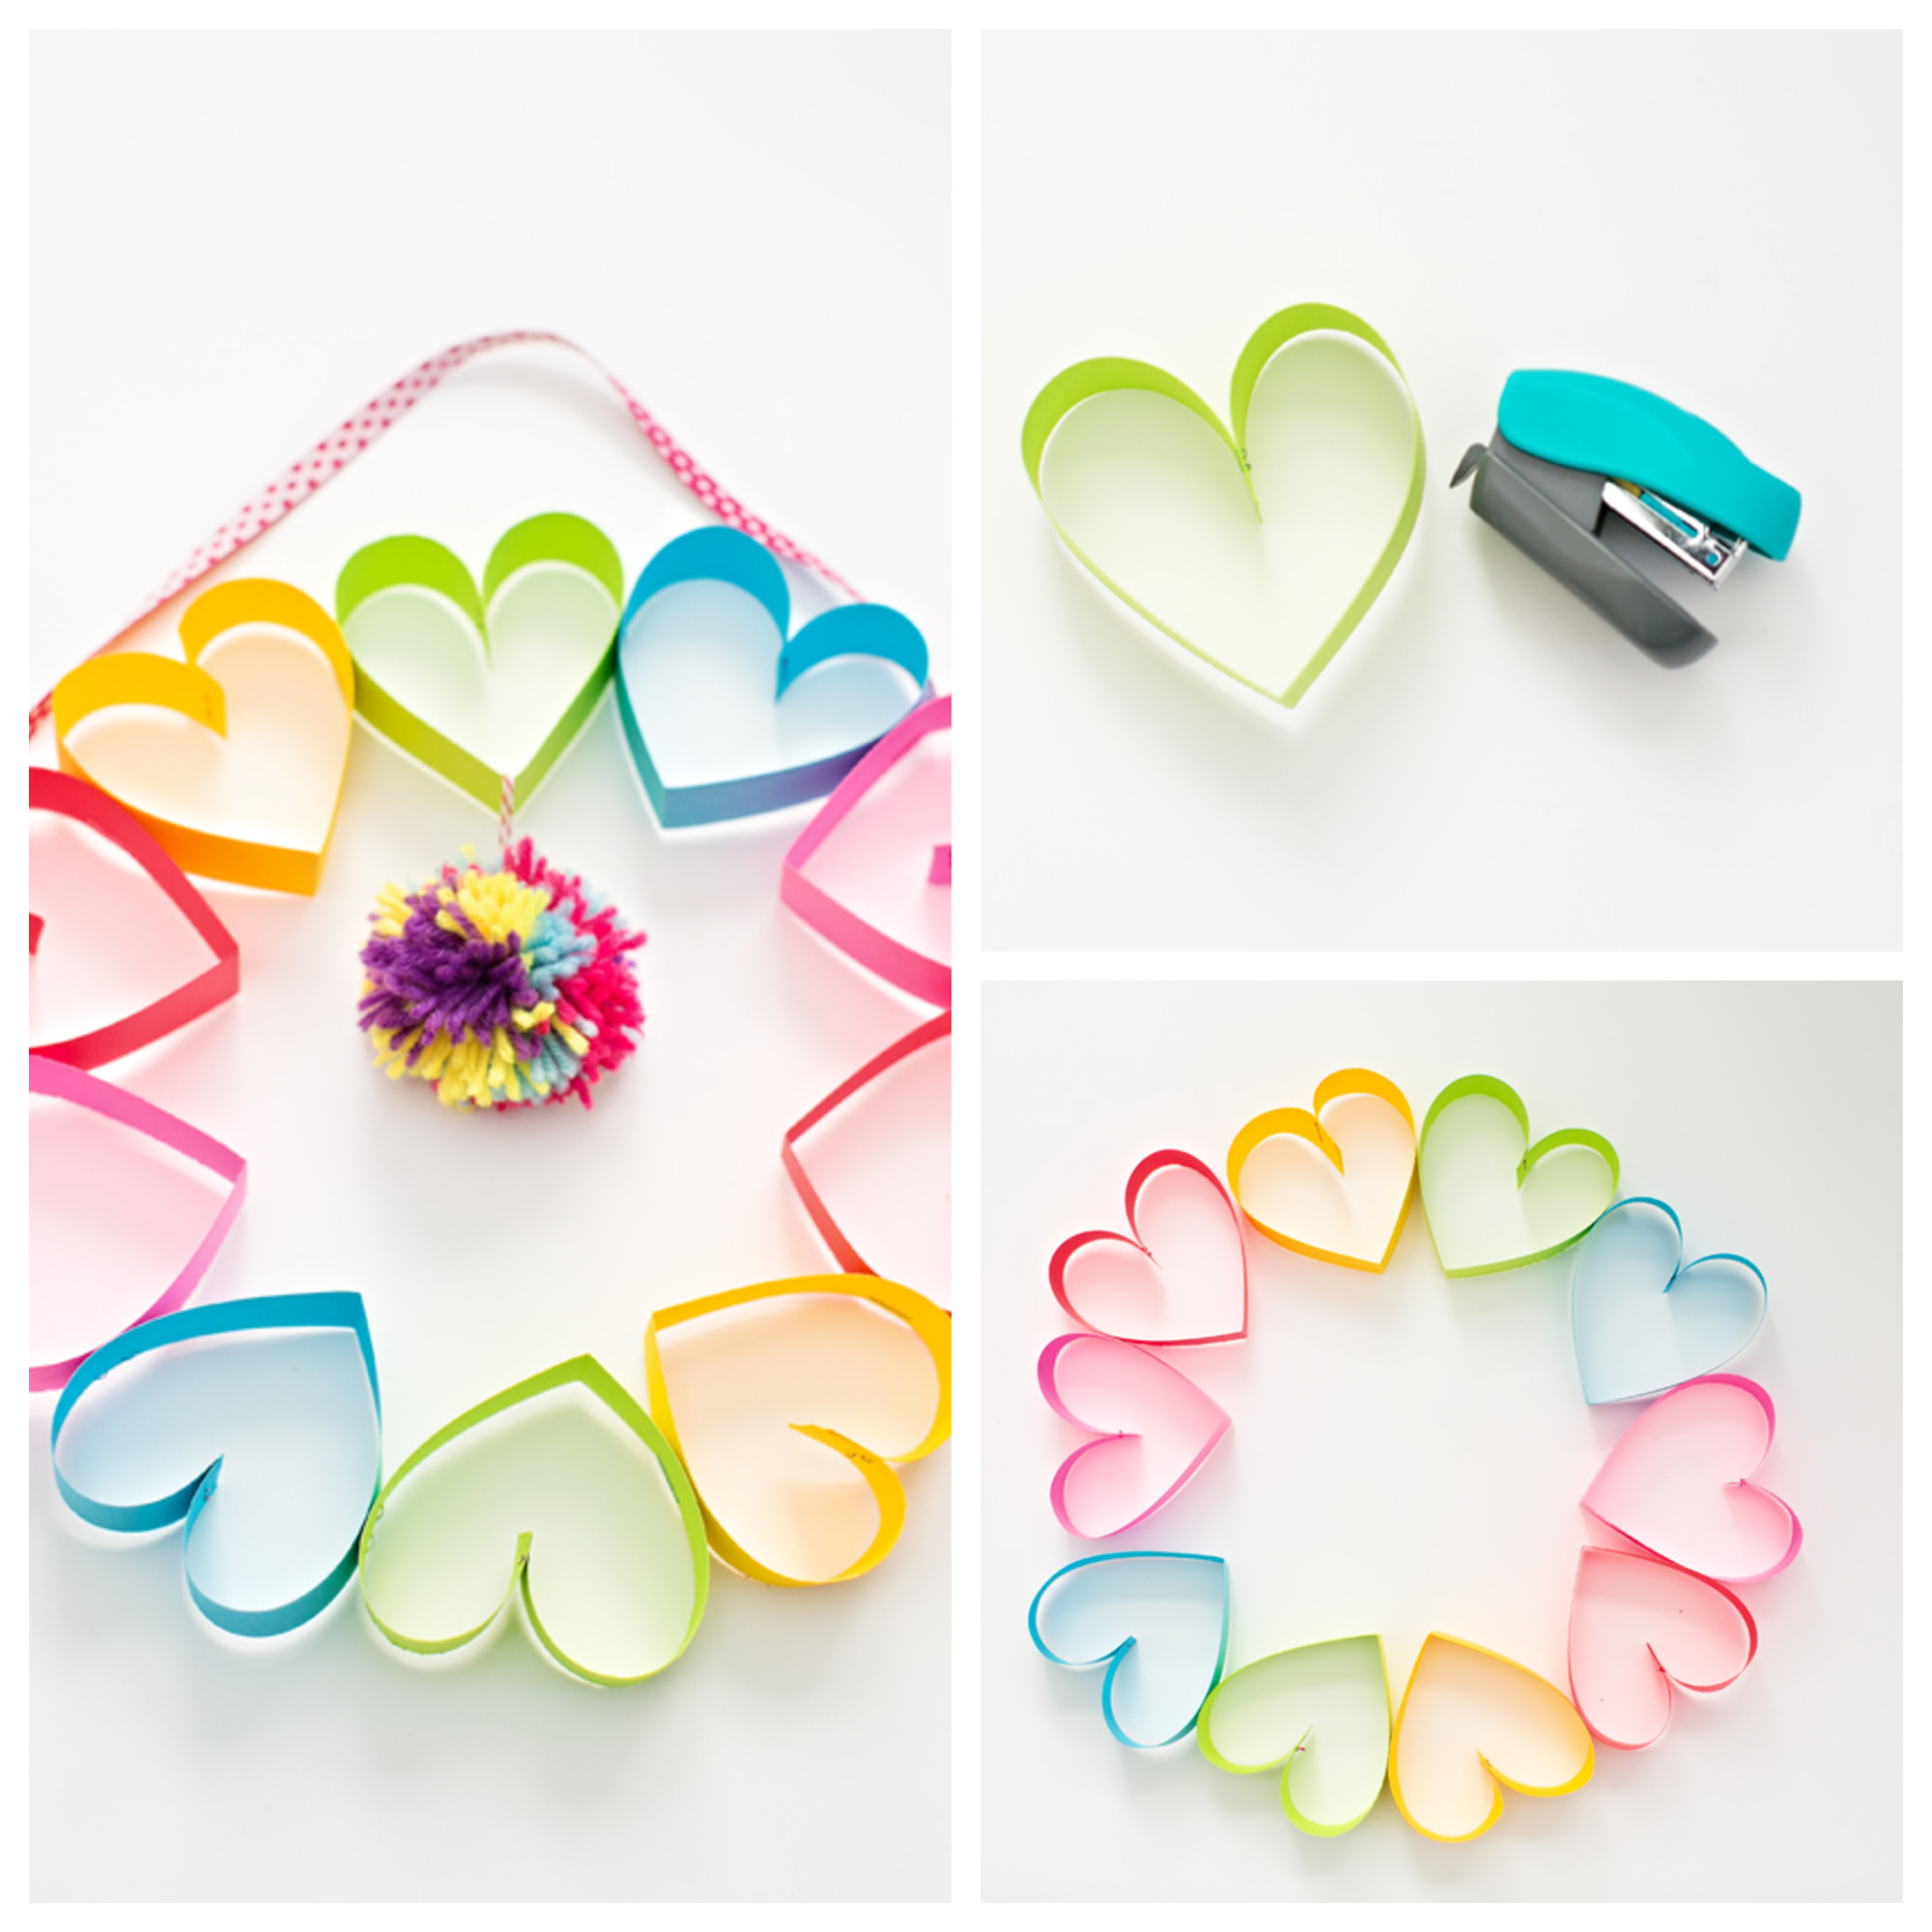 DIY RAINBOW PAPER HEART POM POM WREATH Kids Crafts Ideas That You Can Make Easily